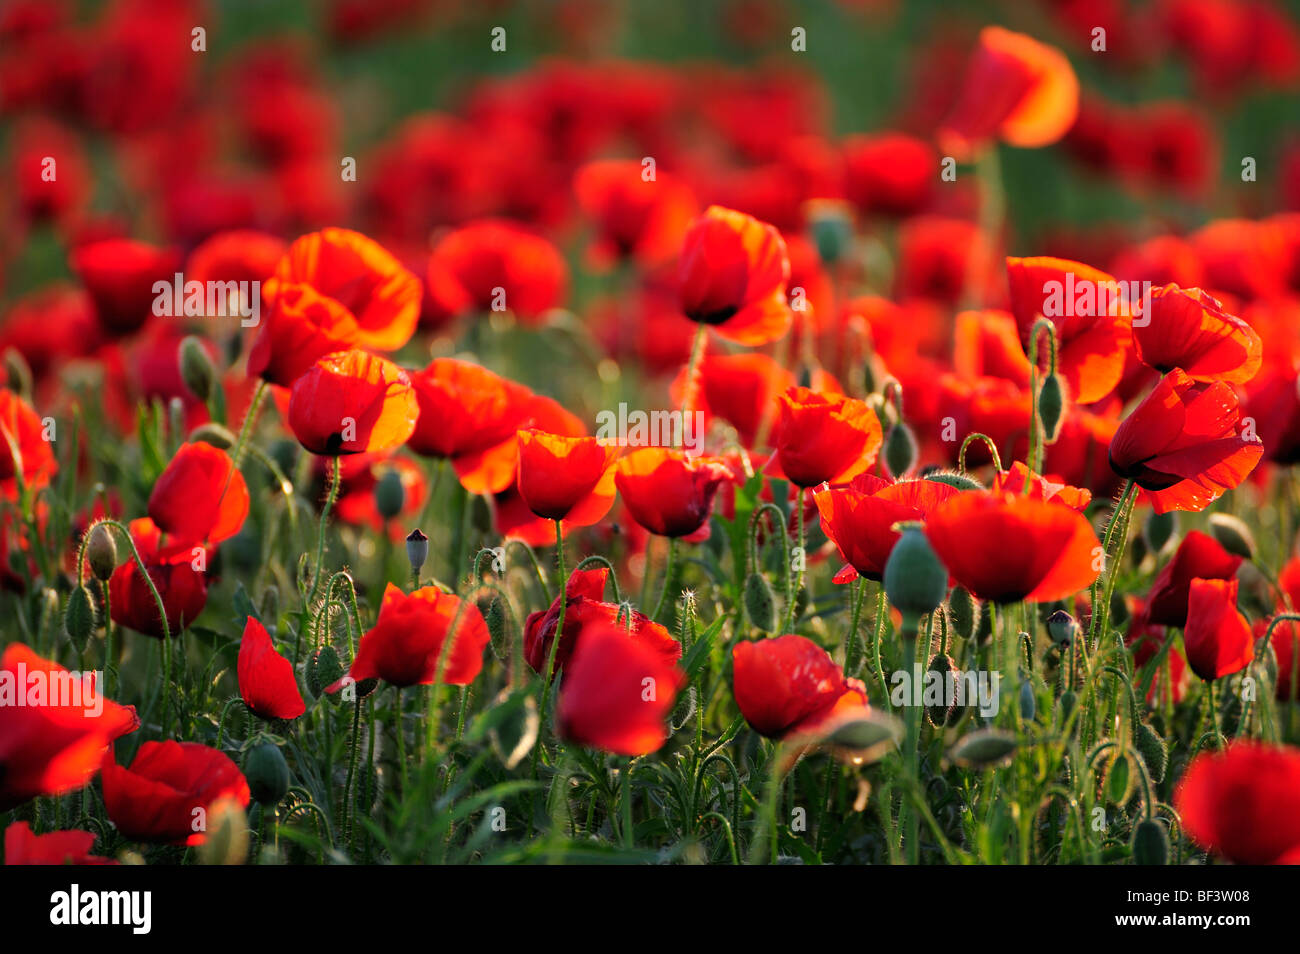 poppy wild flowers red poppies red green nature environment poppy